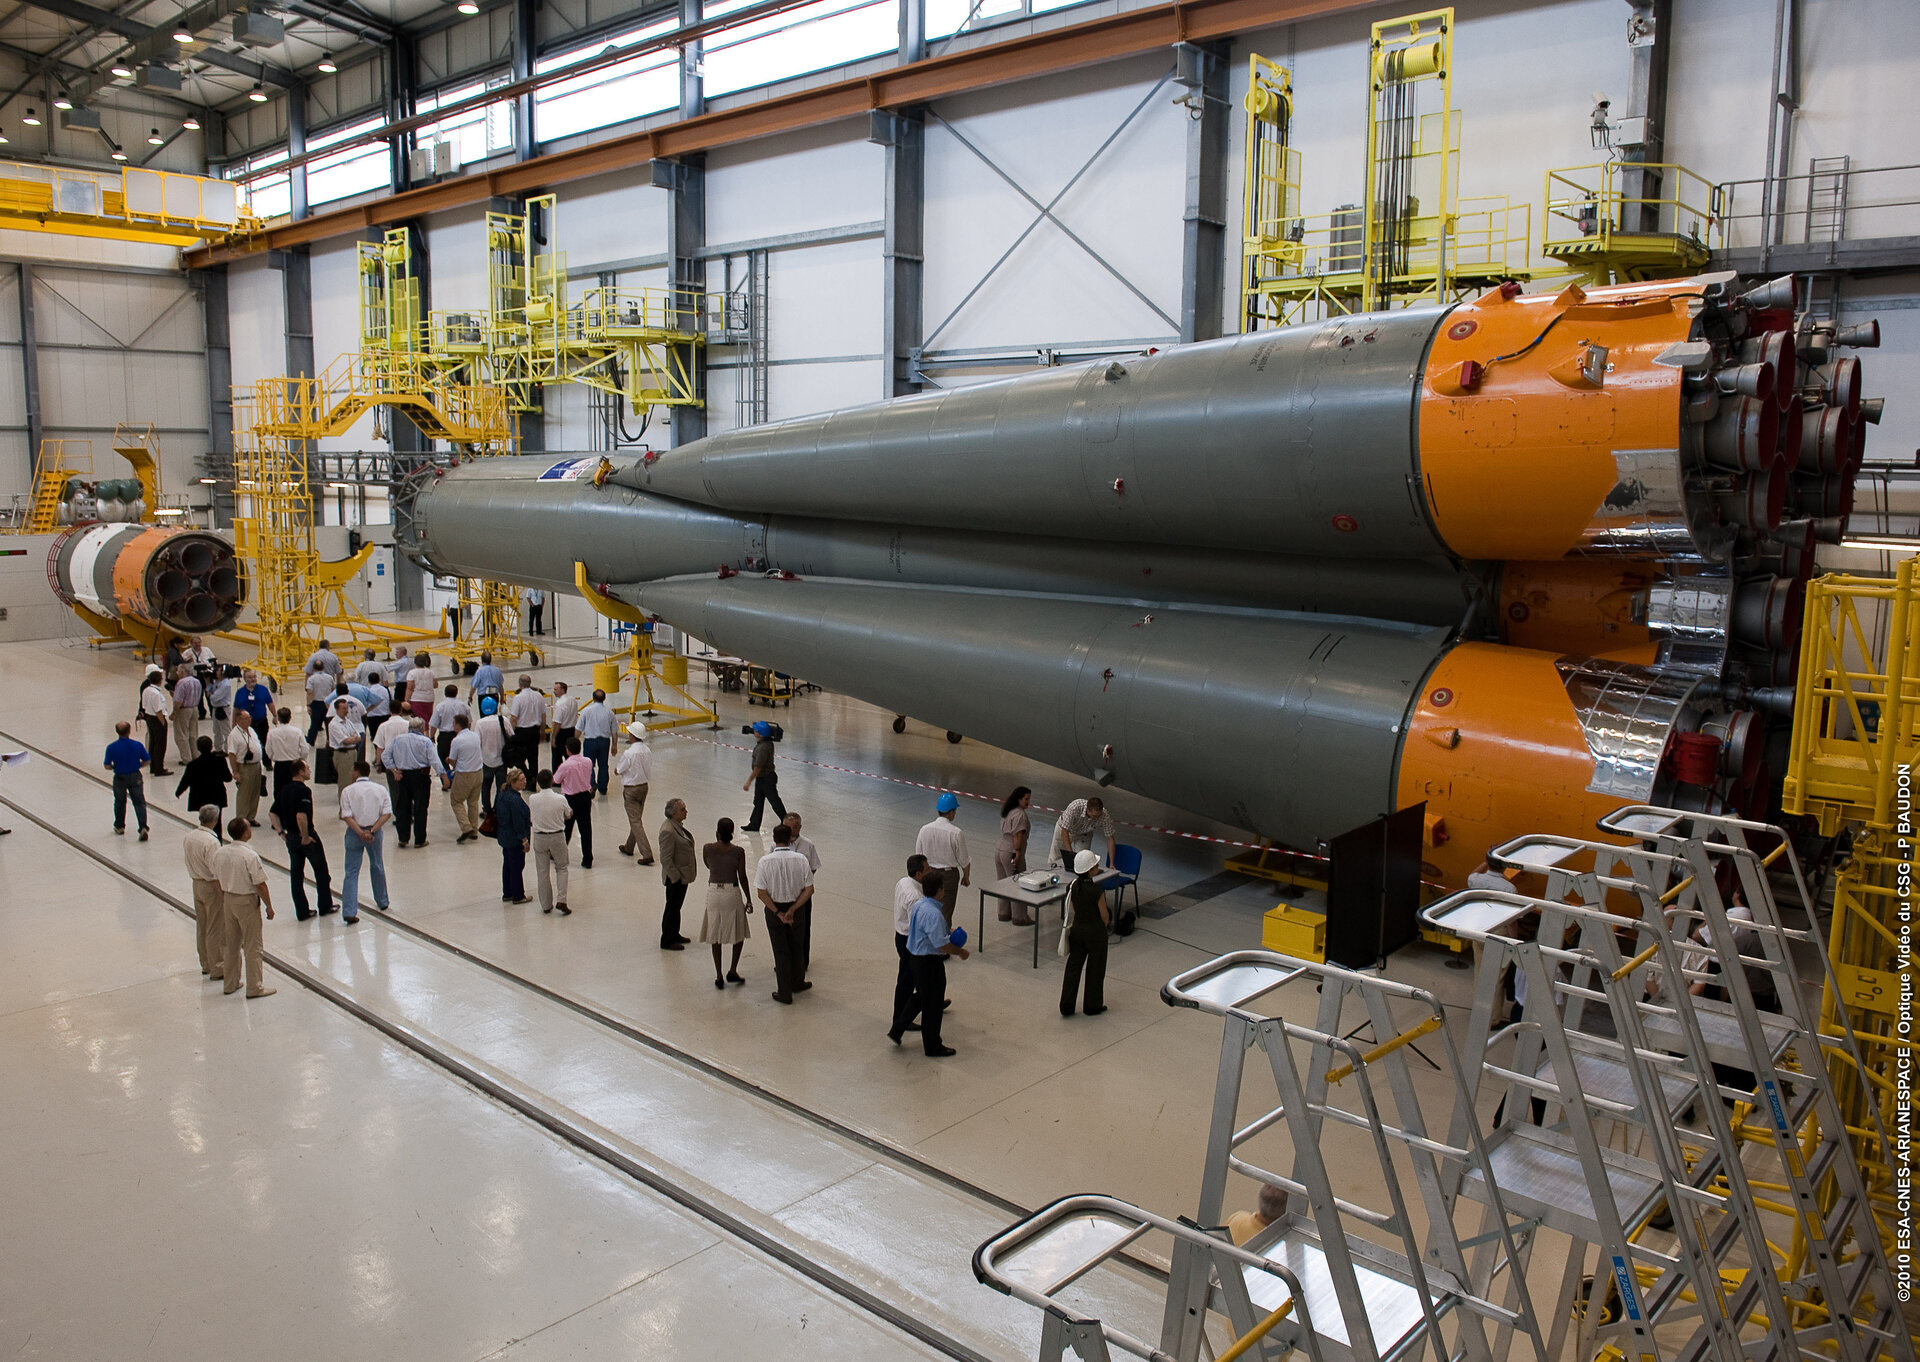 Integration of the first and second stages of Soyuz is completed at Europe's Spaceport